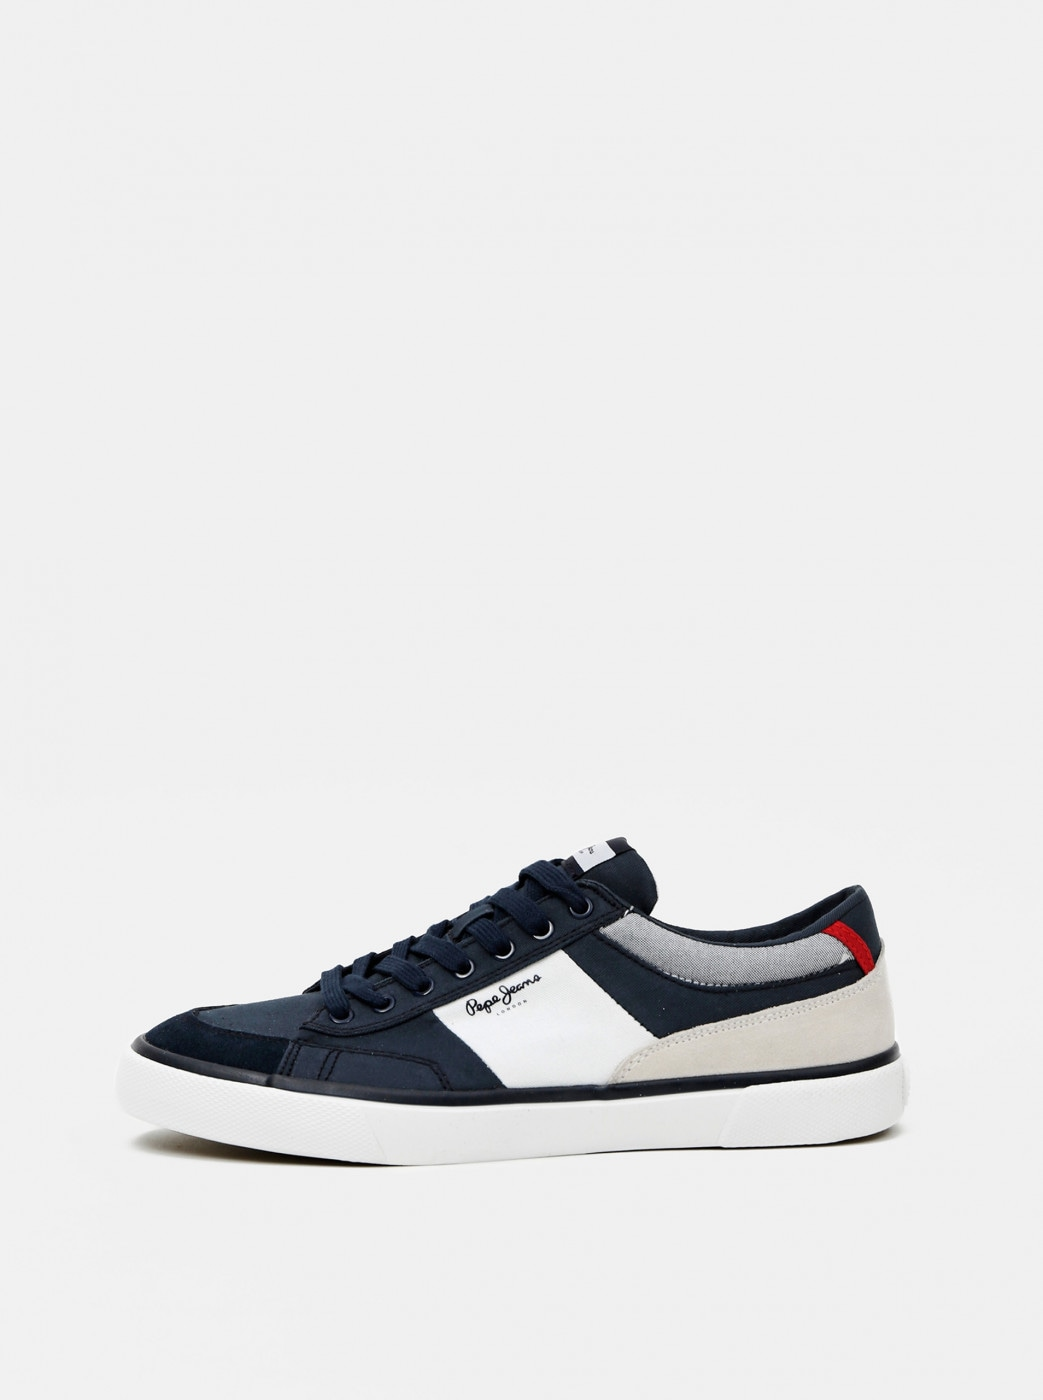 Dark Blue Men's Sneakers with Suede Details Pepe Jeans